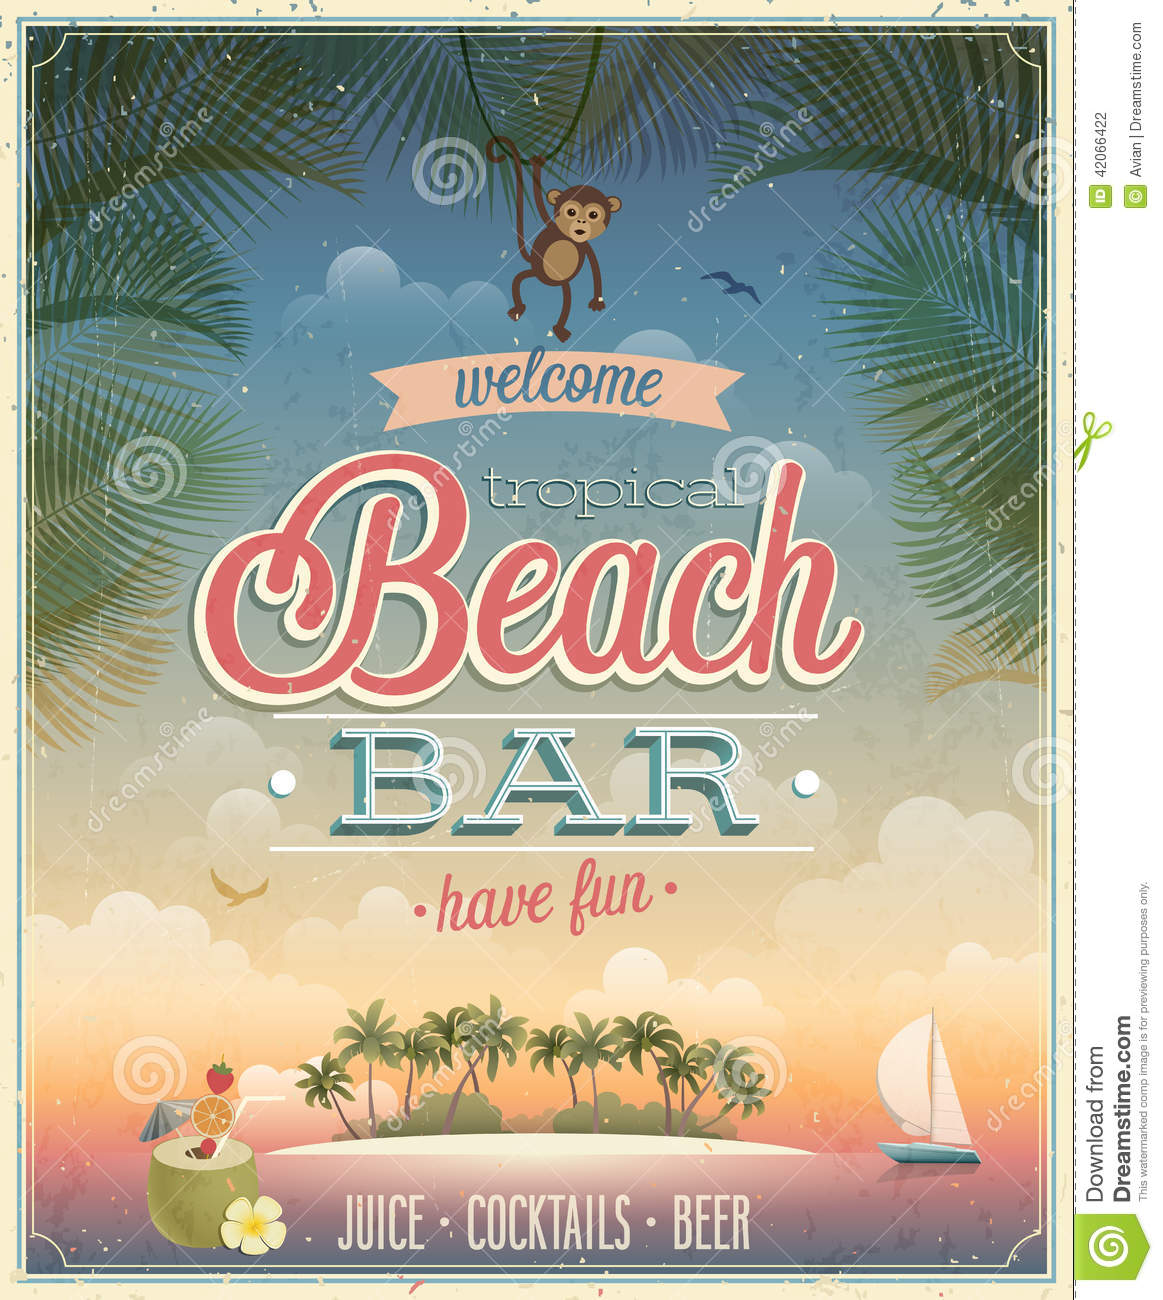 Vintage Beach Bar Poster Stock Vector Image 42066422